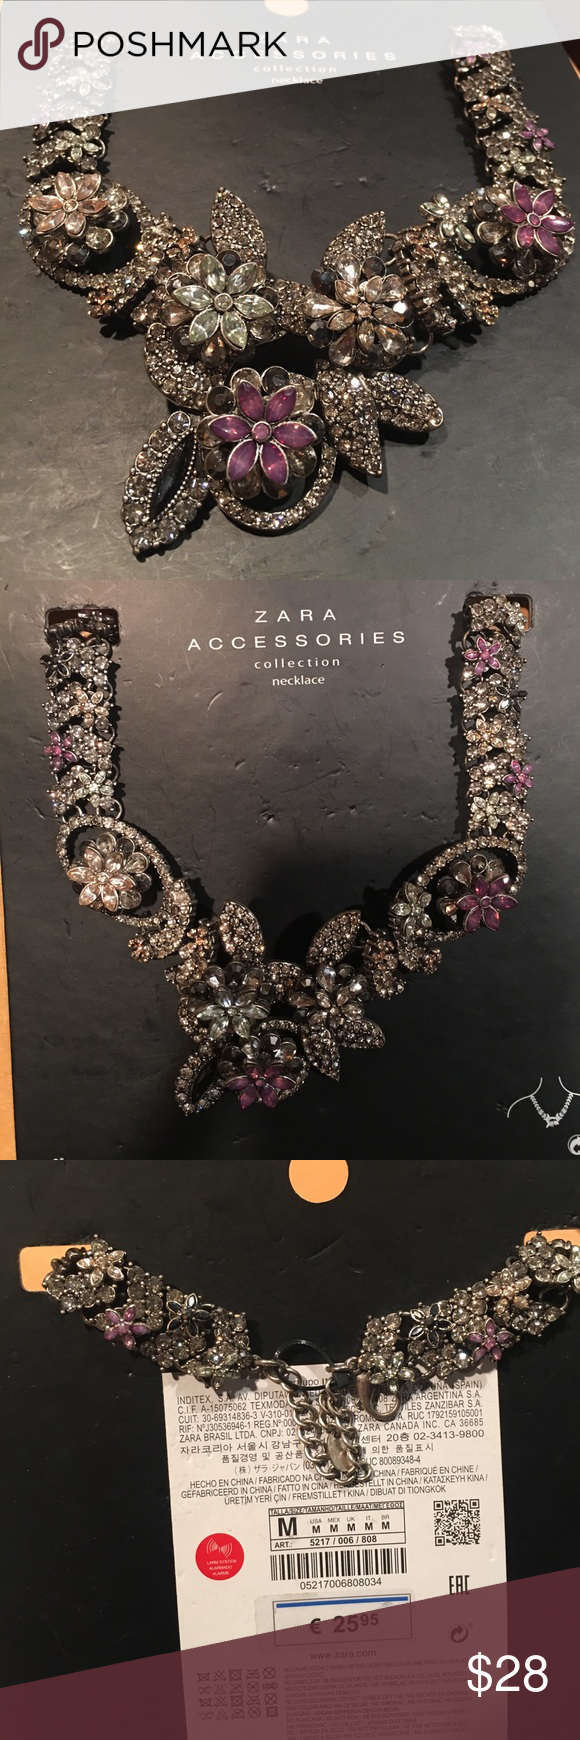 RARE Zara necklace. New, gorgeous design NWT | Customer support ...